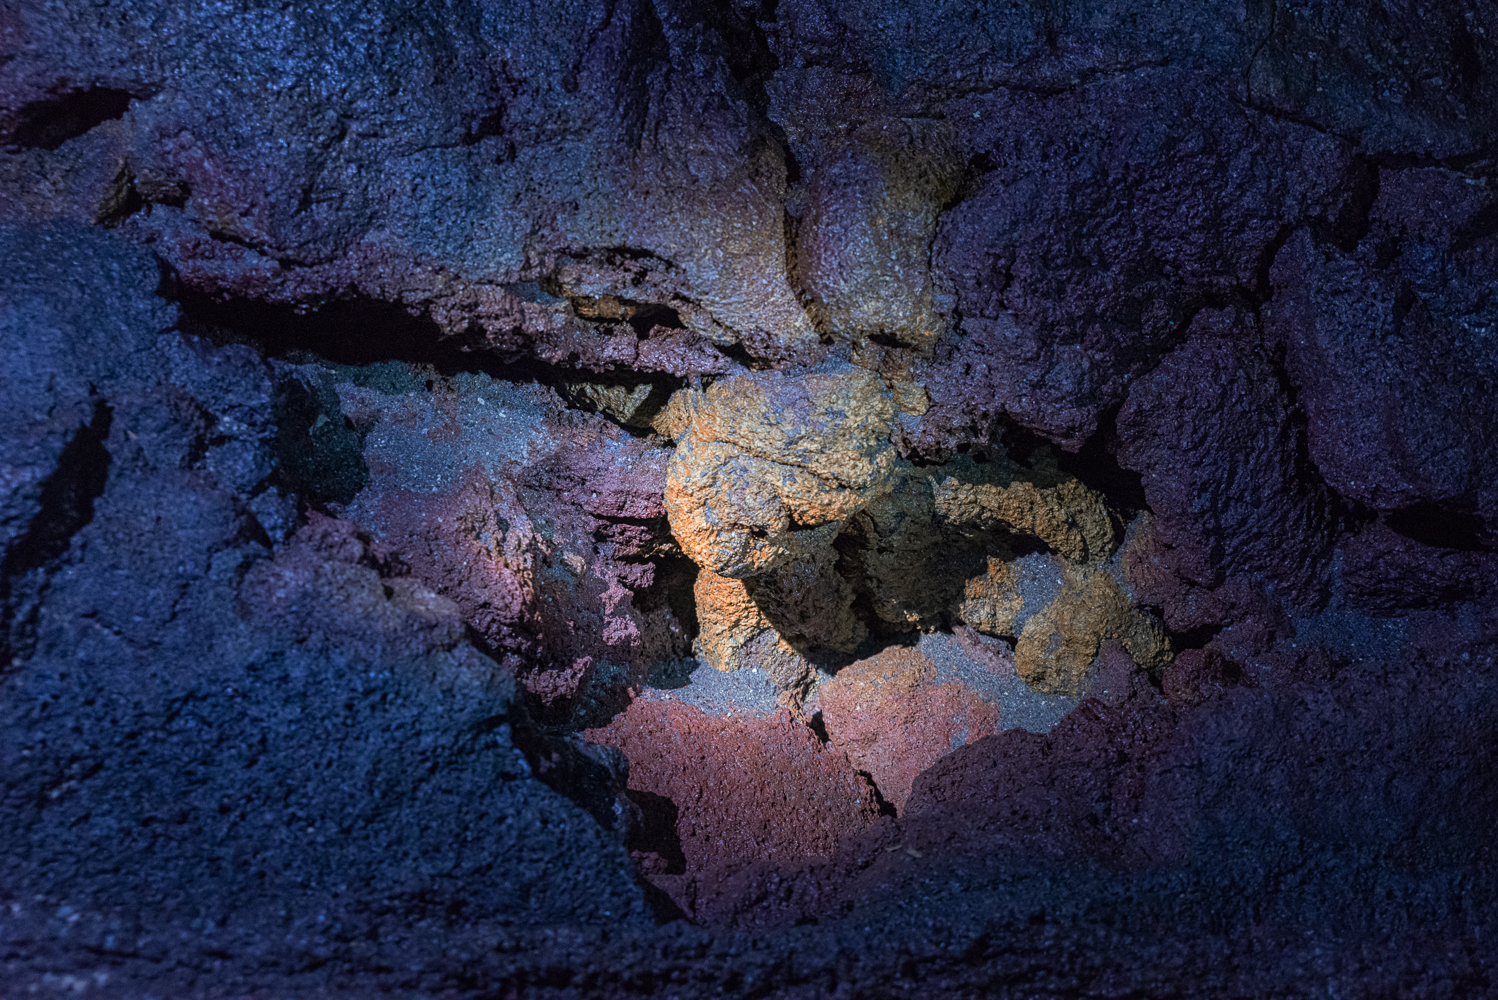 There are some alien worlds down below … or at least some quirky shapes and colors in a lava tube!